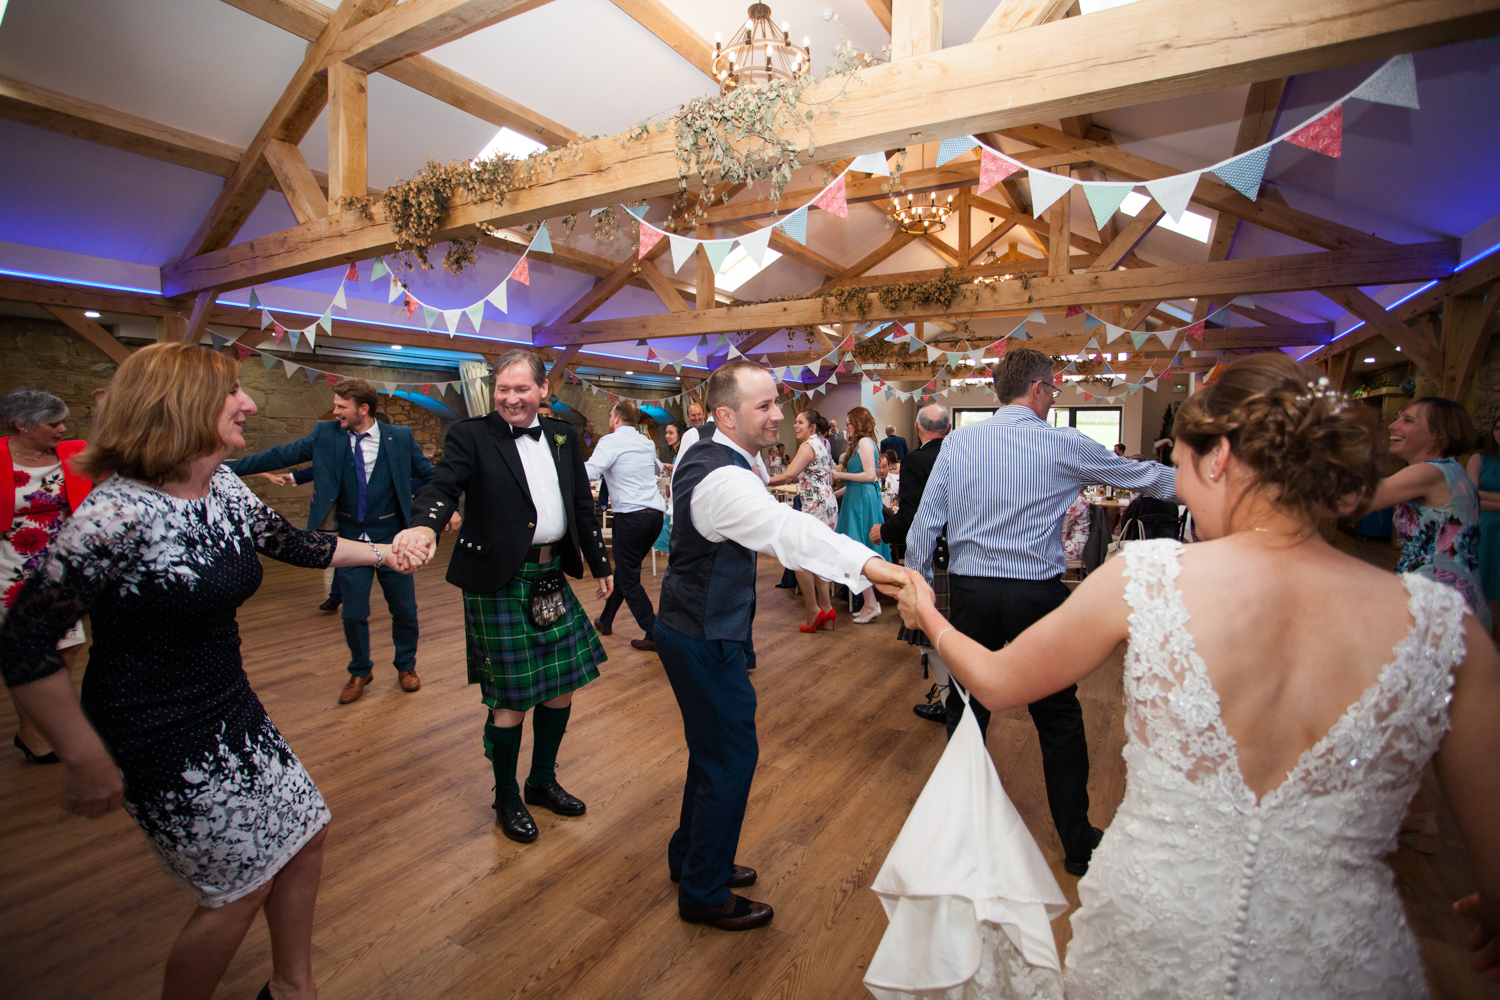 WEDDING_PICTORIAL_DOXFORD_BARNS_ALNWICK_BERWICK_SEASIDE_BUNTING_FARM-1169.jpg